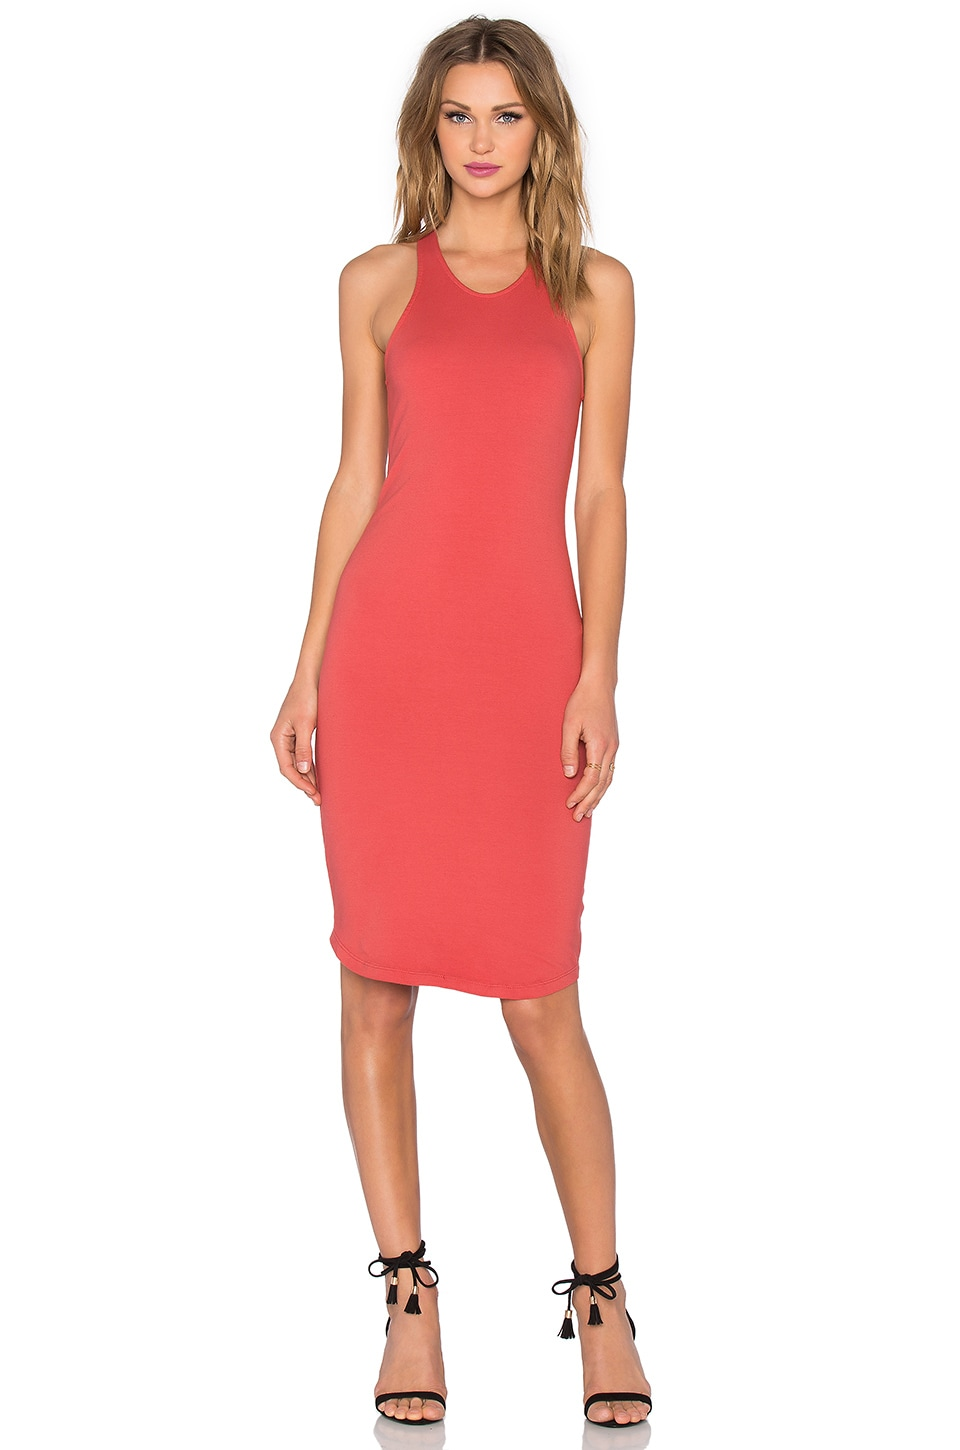 MONROW Sporty Tank Dress in Terracotta